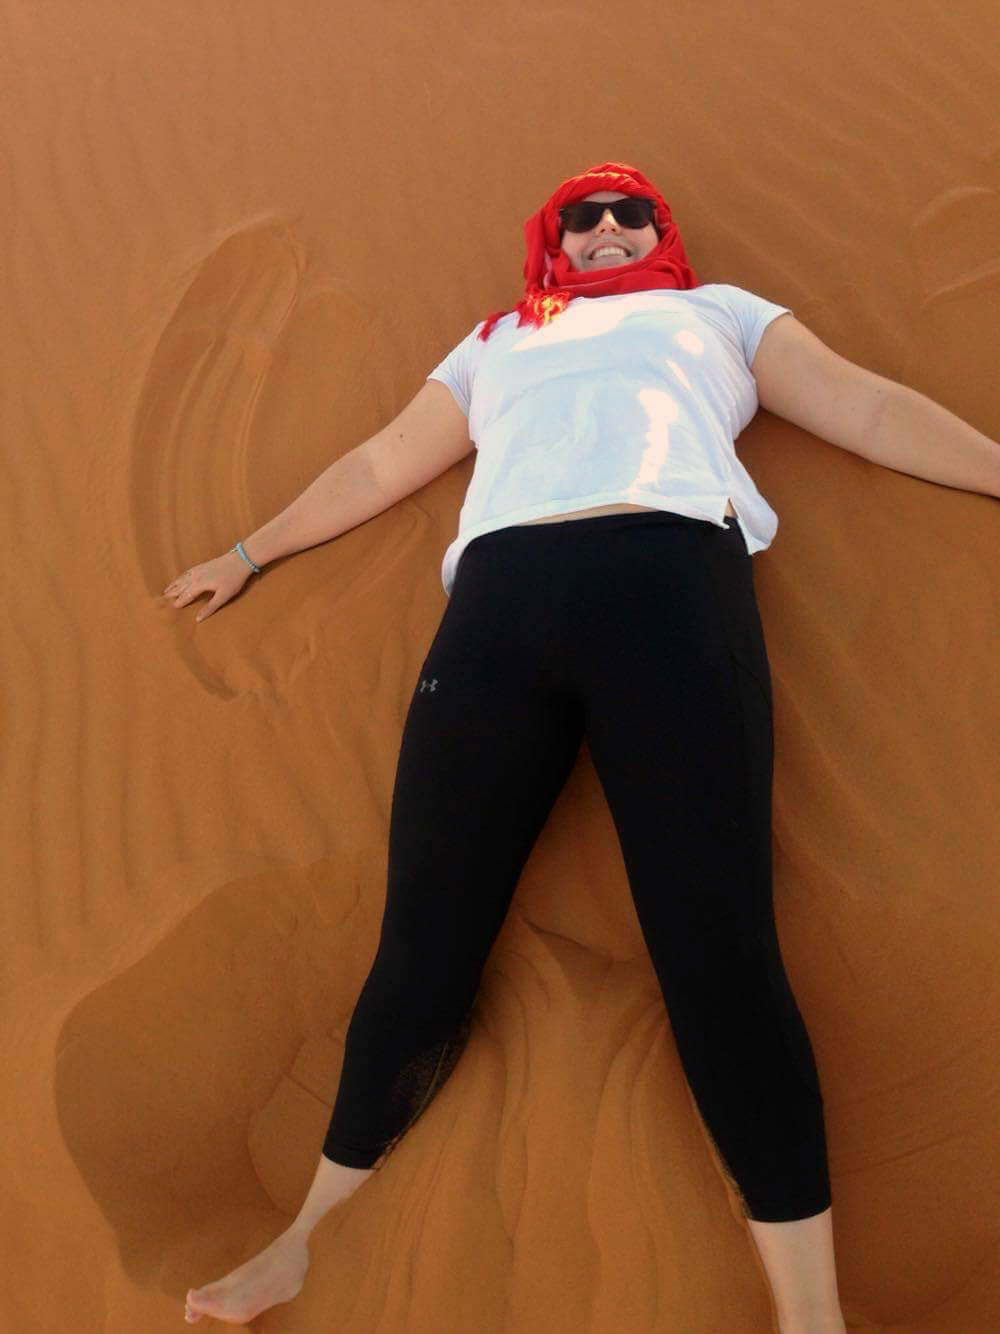 The author poses as a sand angel